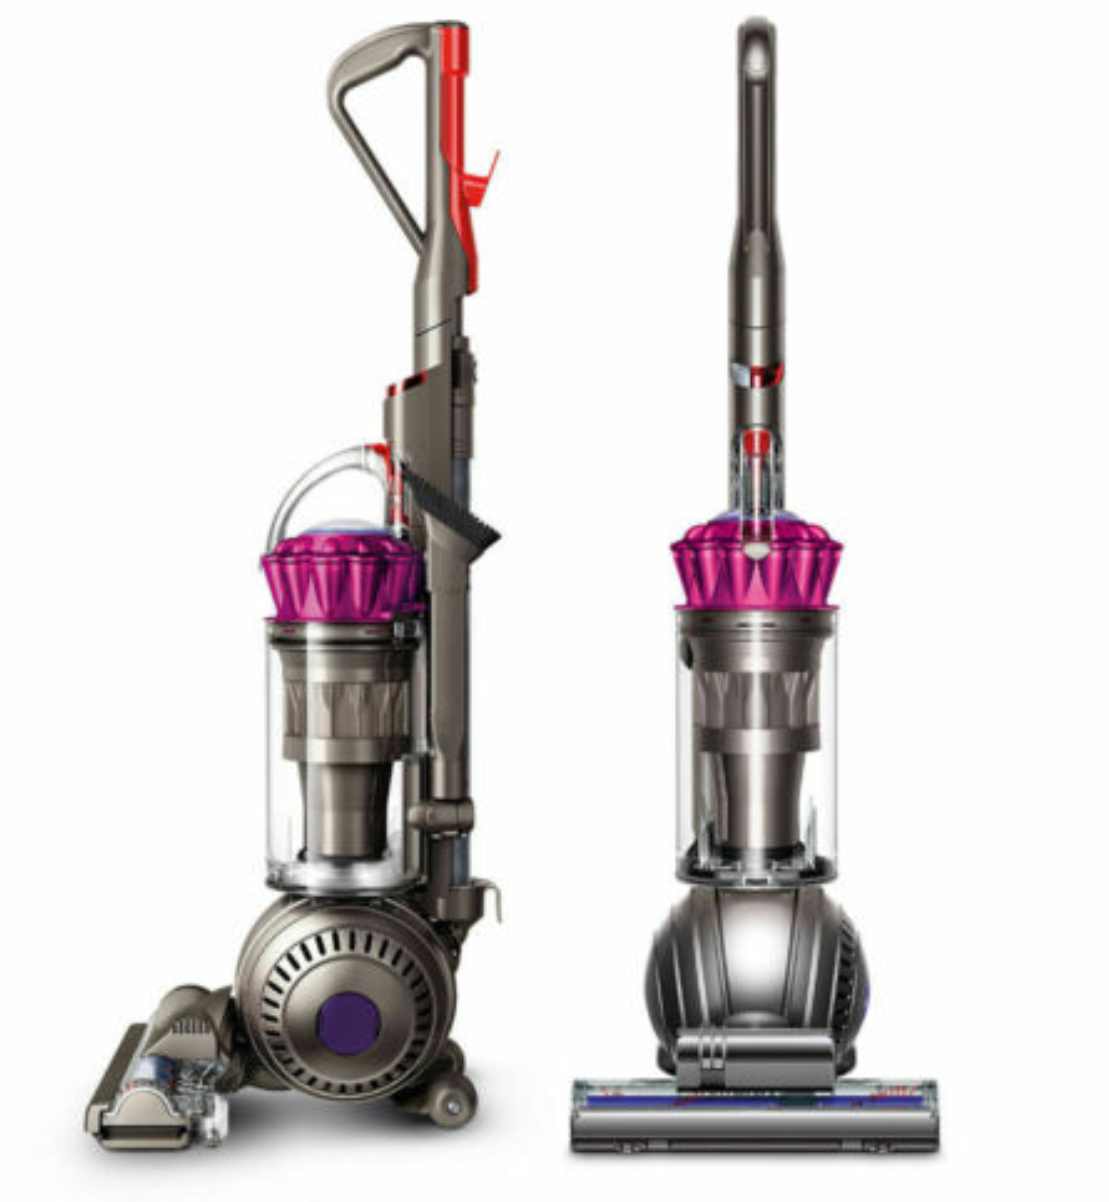 Ebay Extra 20% off Select Dyson Styles with Code PSAVEONDYSON